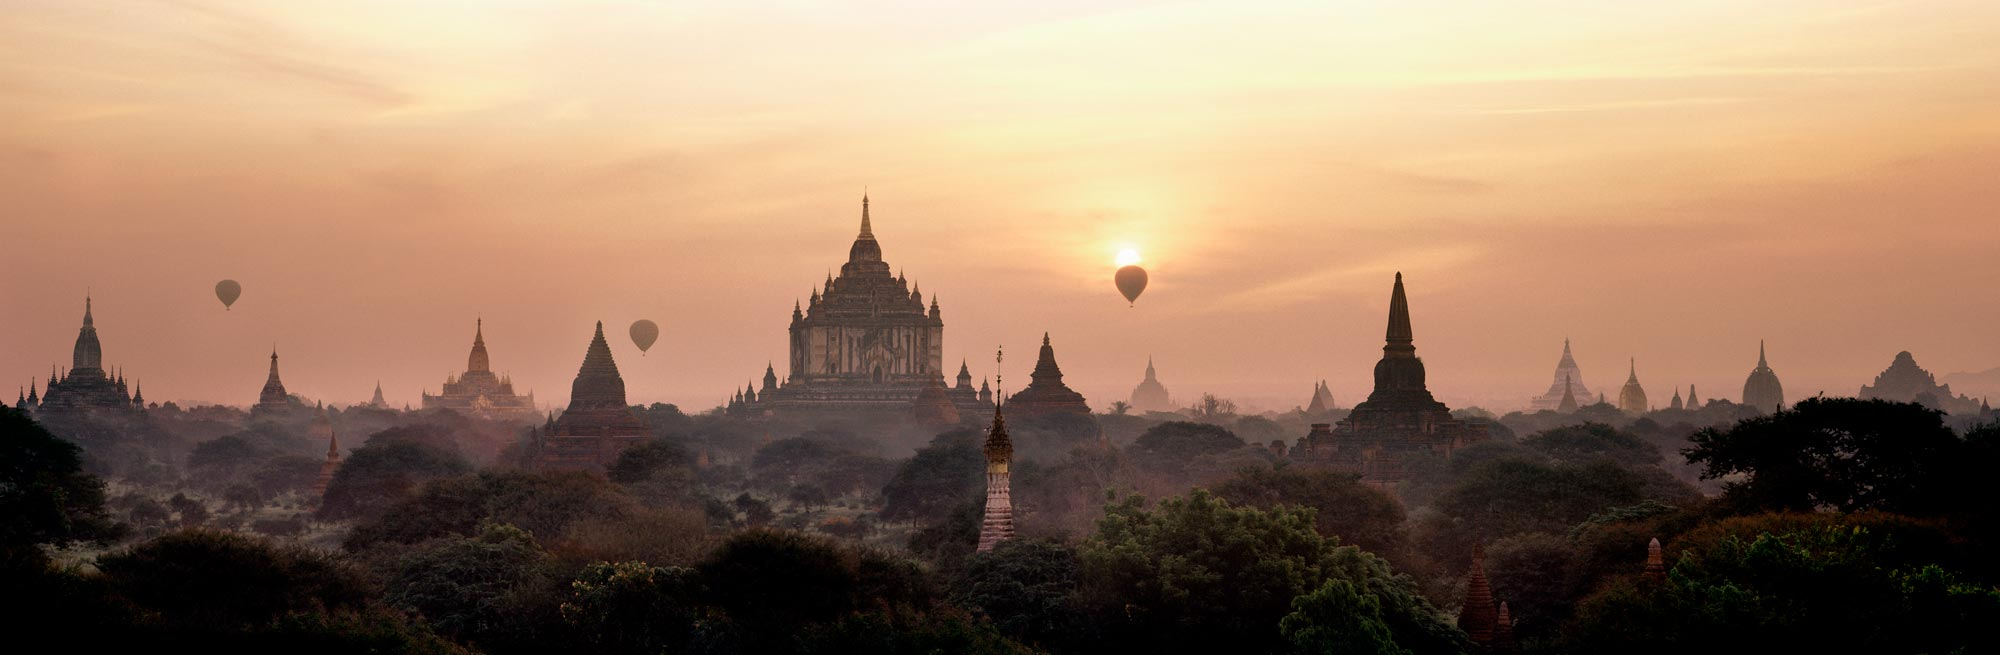 5 days in Myanmar (Burma)